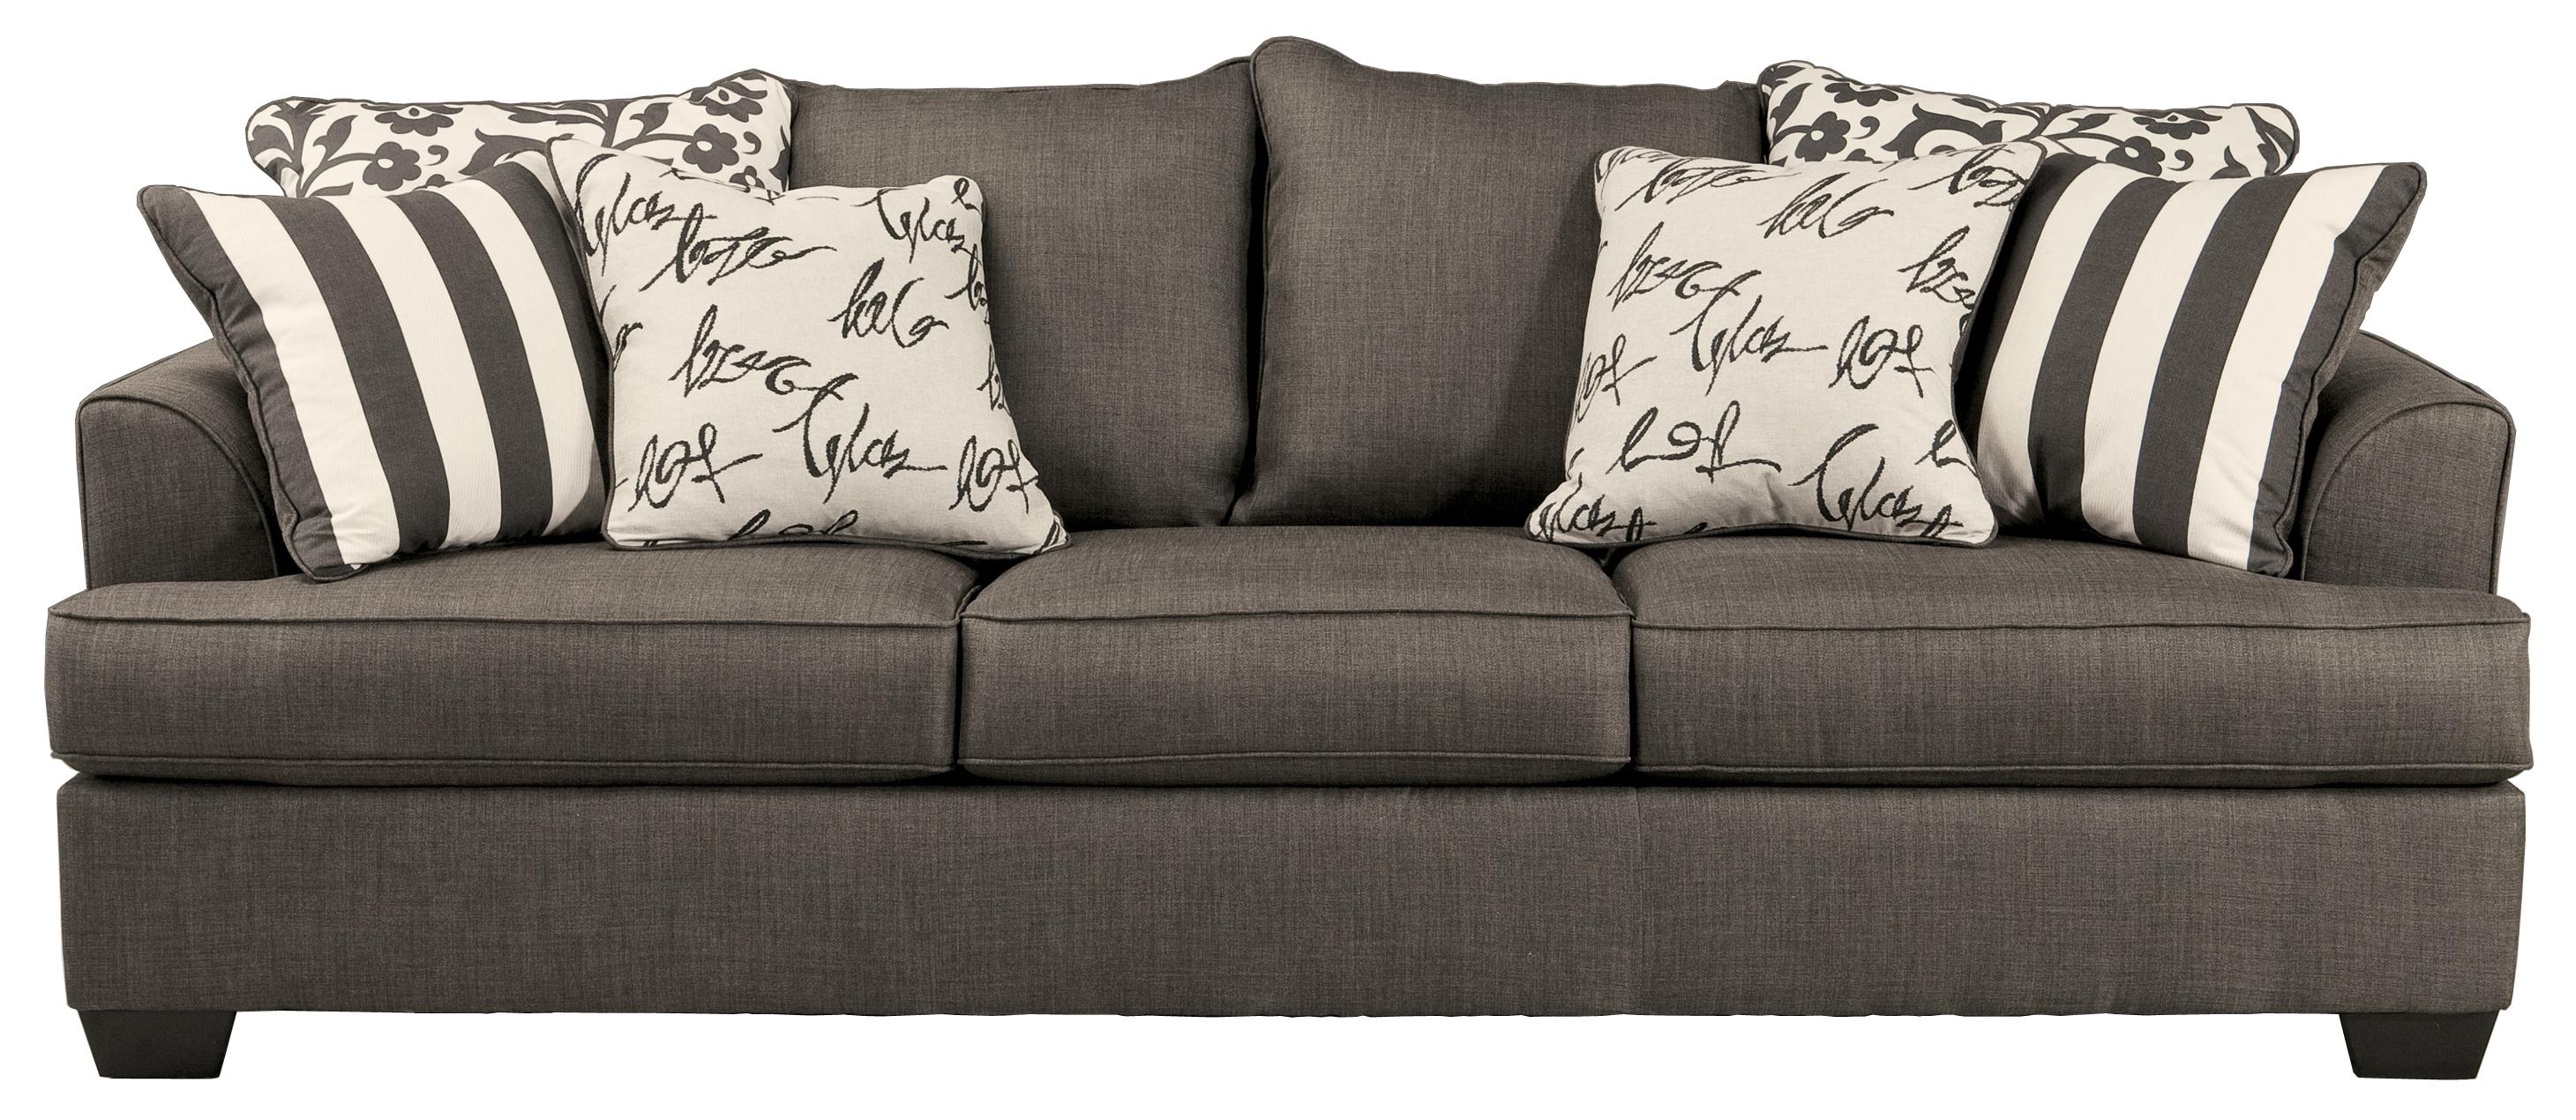 sofa with scatterback pillows and plush coil seat cushions. Black Bedroom Furniture Sets. Home Design Ideas